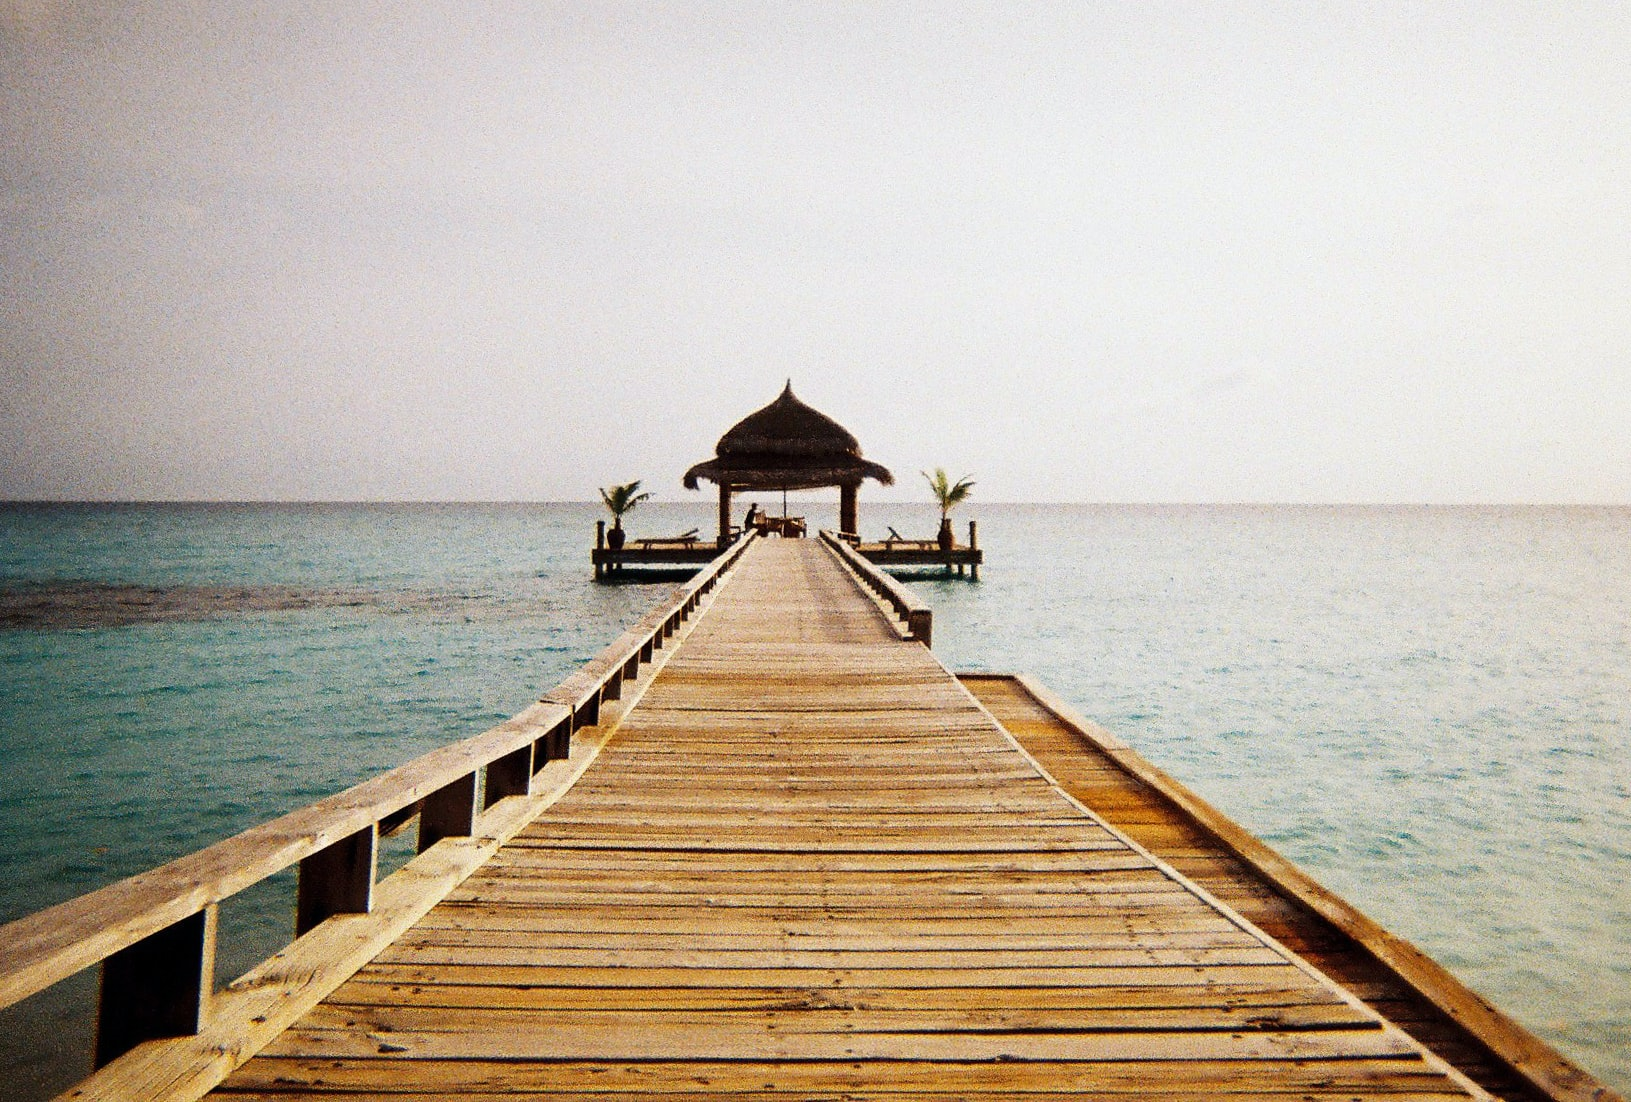 brown wooden walkway on body of water